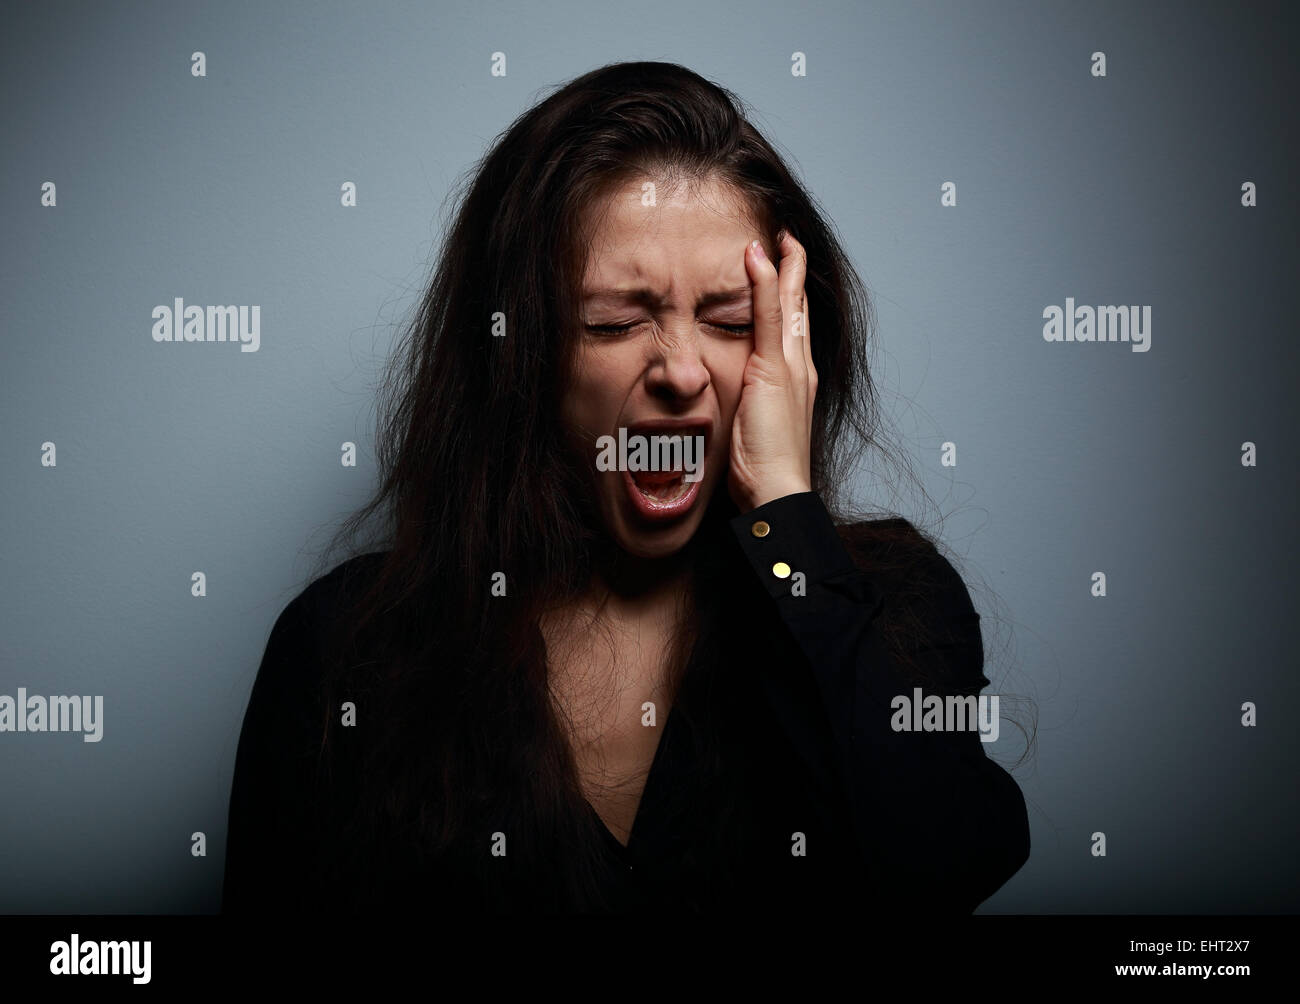 Closeup portrait of angry, sad and desperate shouting woman on dark background - Stock Image